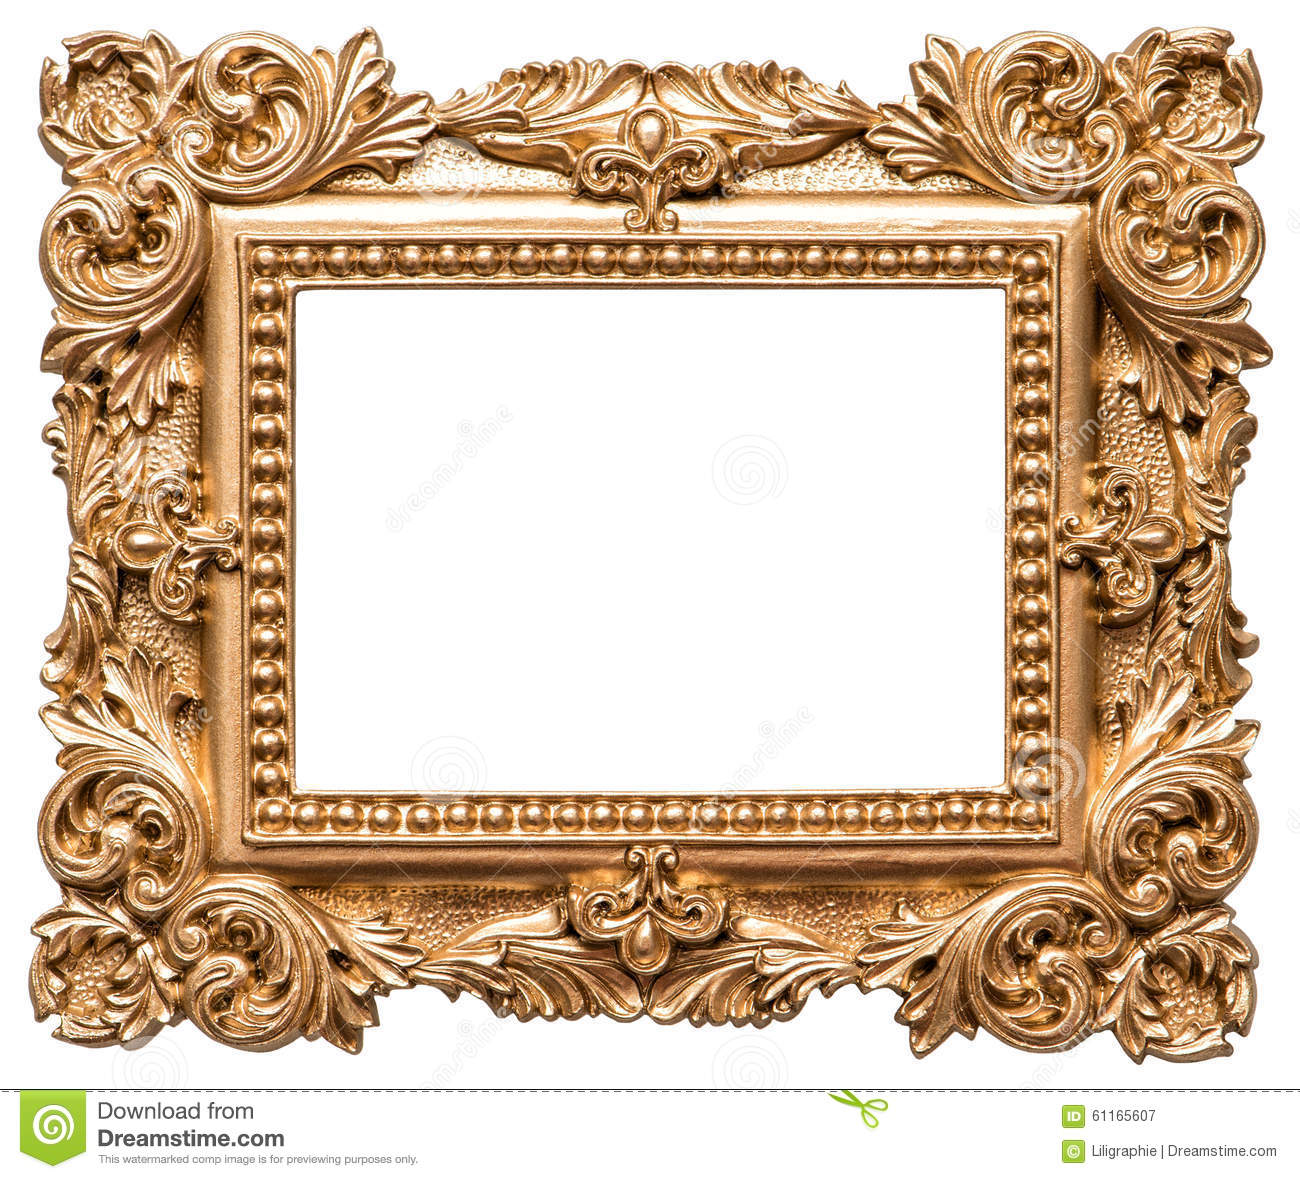 Baroque style golden picture frame vintage art object for Miroir noir baroque